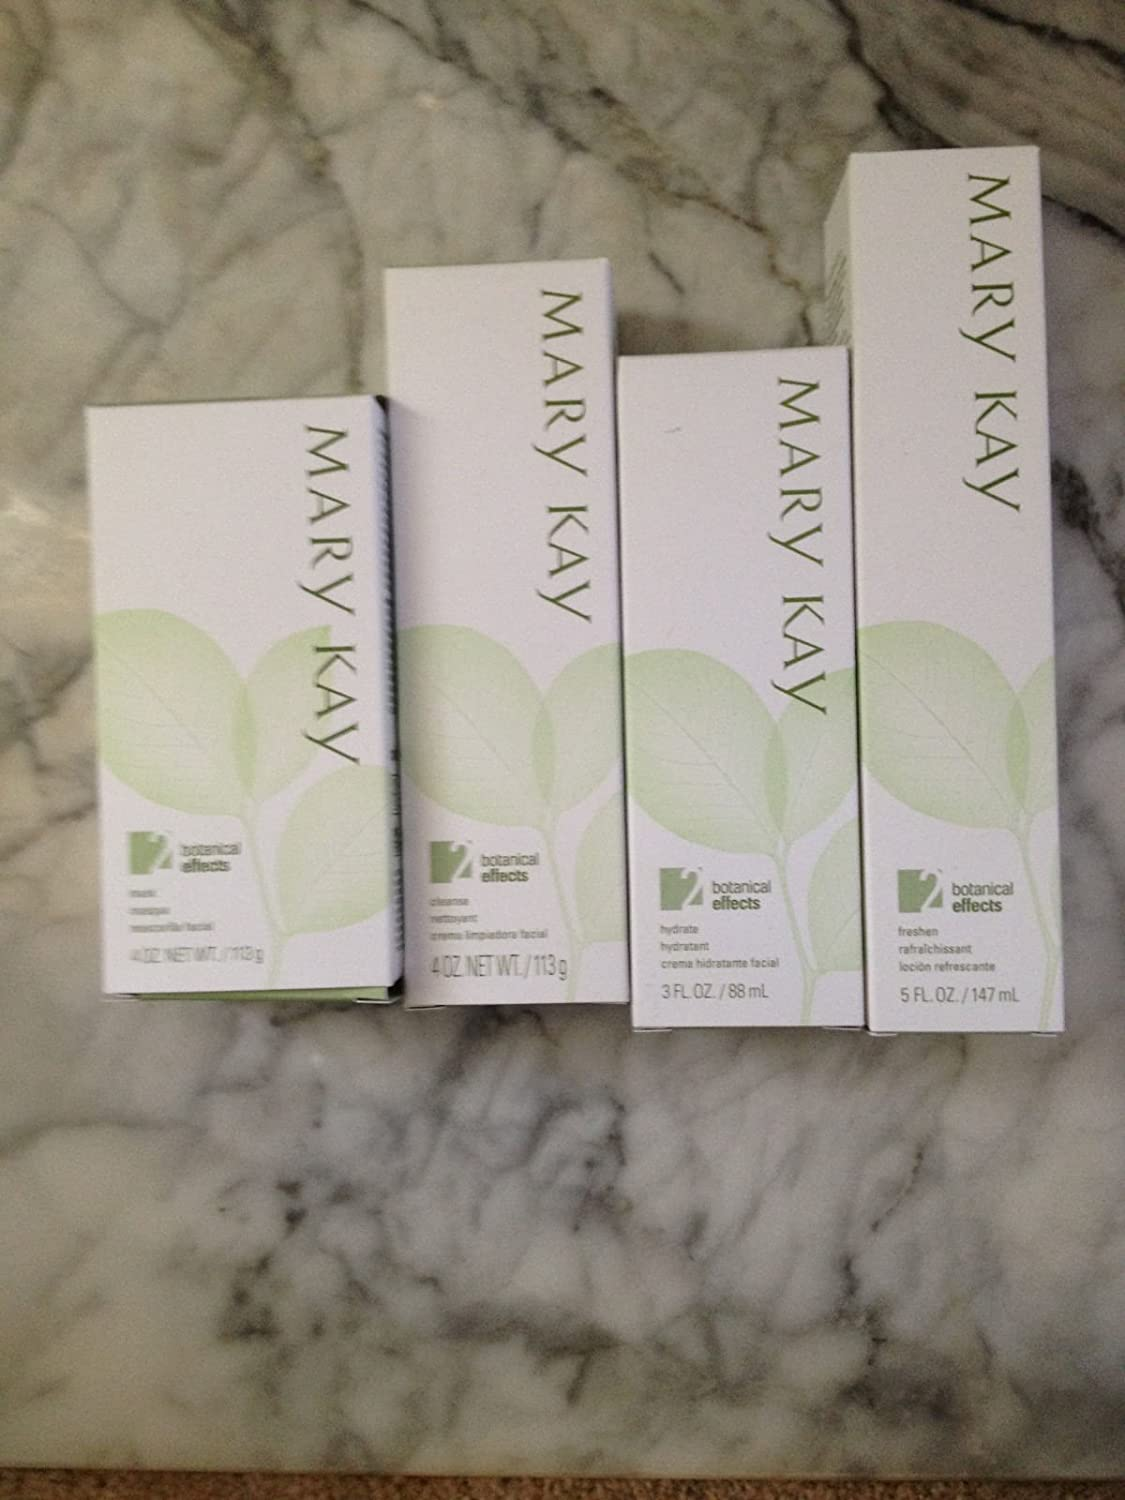 Mary Kay Botanical Effects Skin Care Set Formula 2 Normal Skin